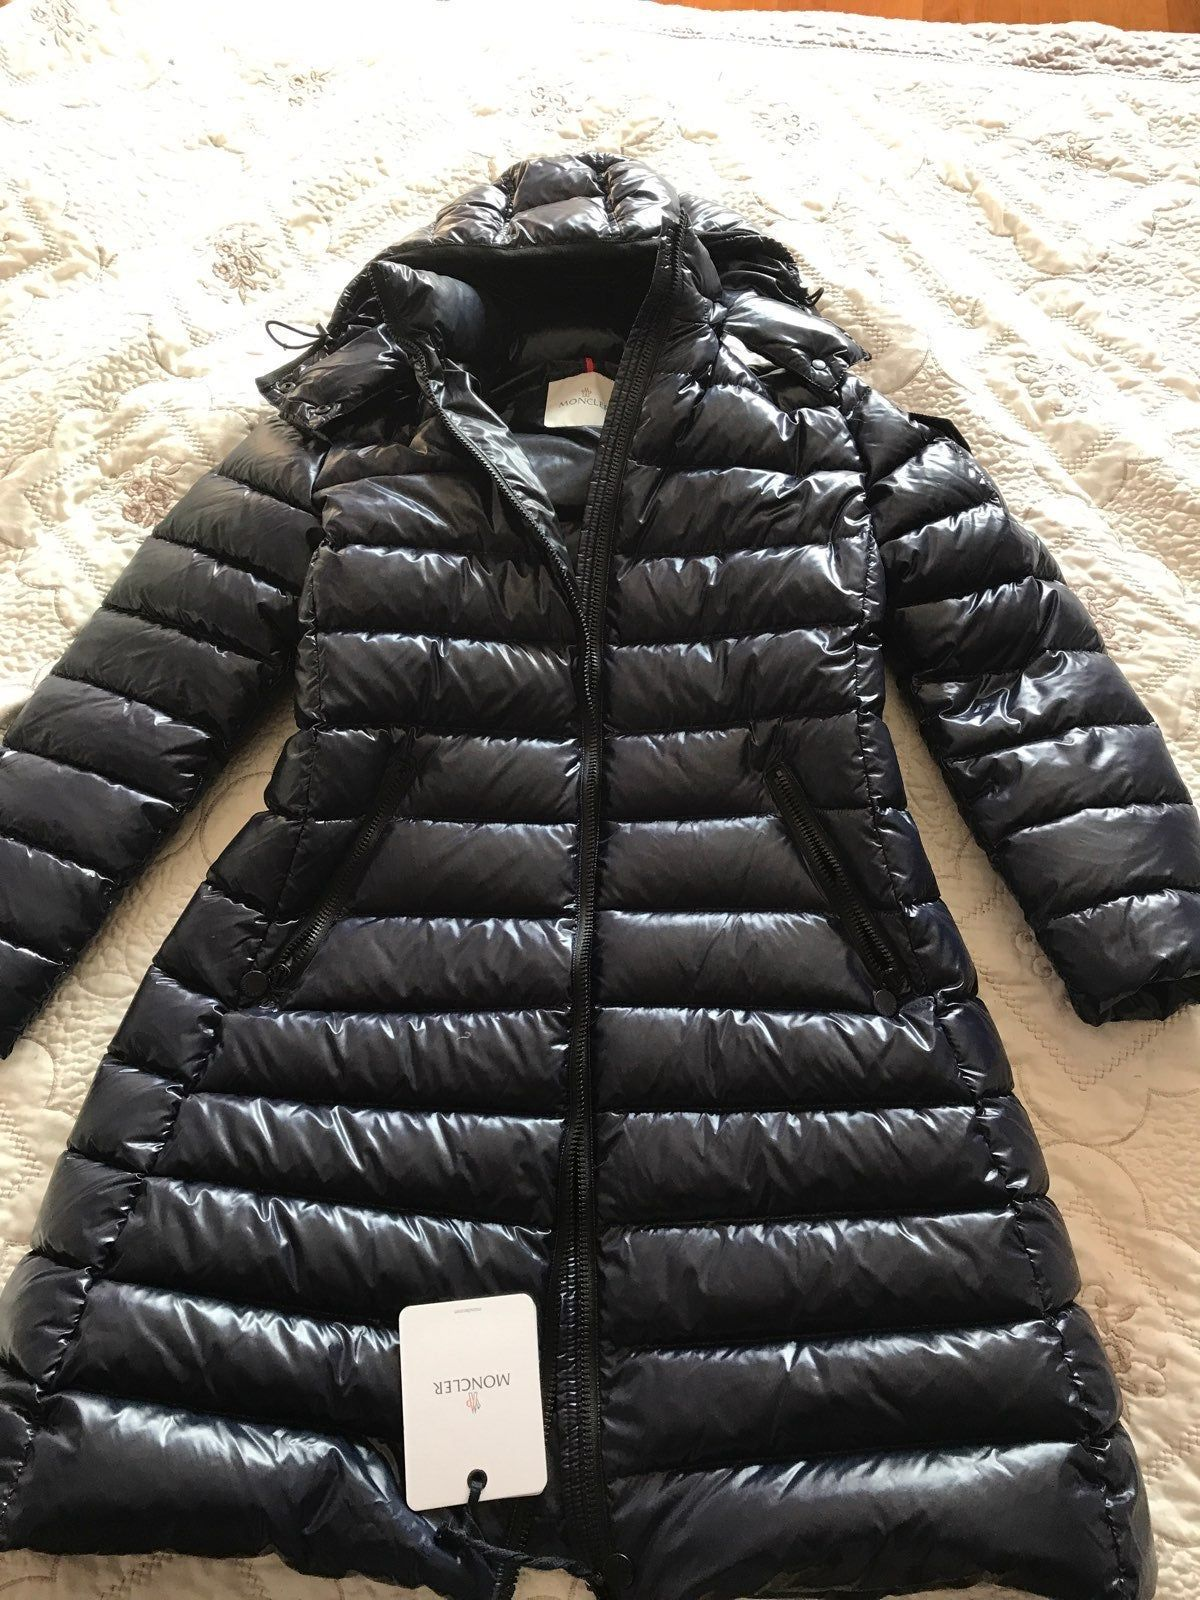 100 Authentic Brand New With Tags Moncler Moka Coat Size 3 M L Measurements 18 Inches Chest And 23 Inches In Hip Coat Is Lacque Moncler Moncler Jacket Coat [ 1600 x 1200 Pixel ]